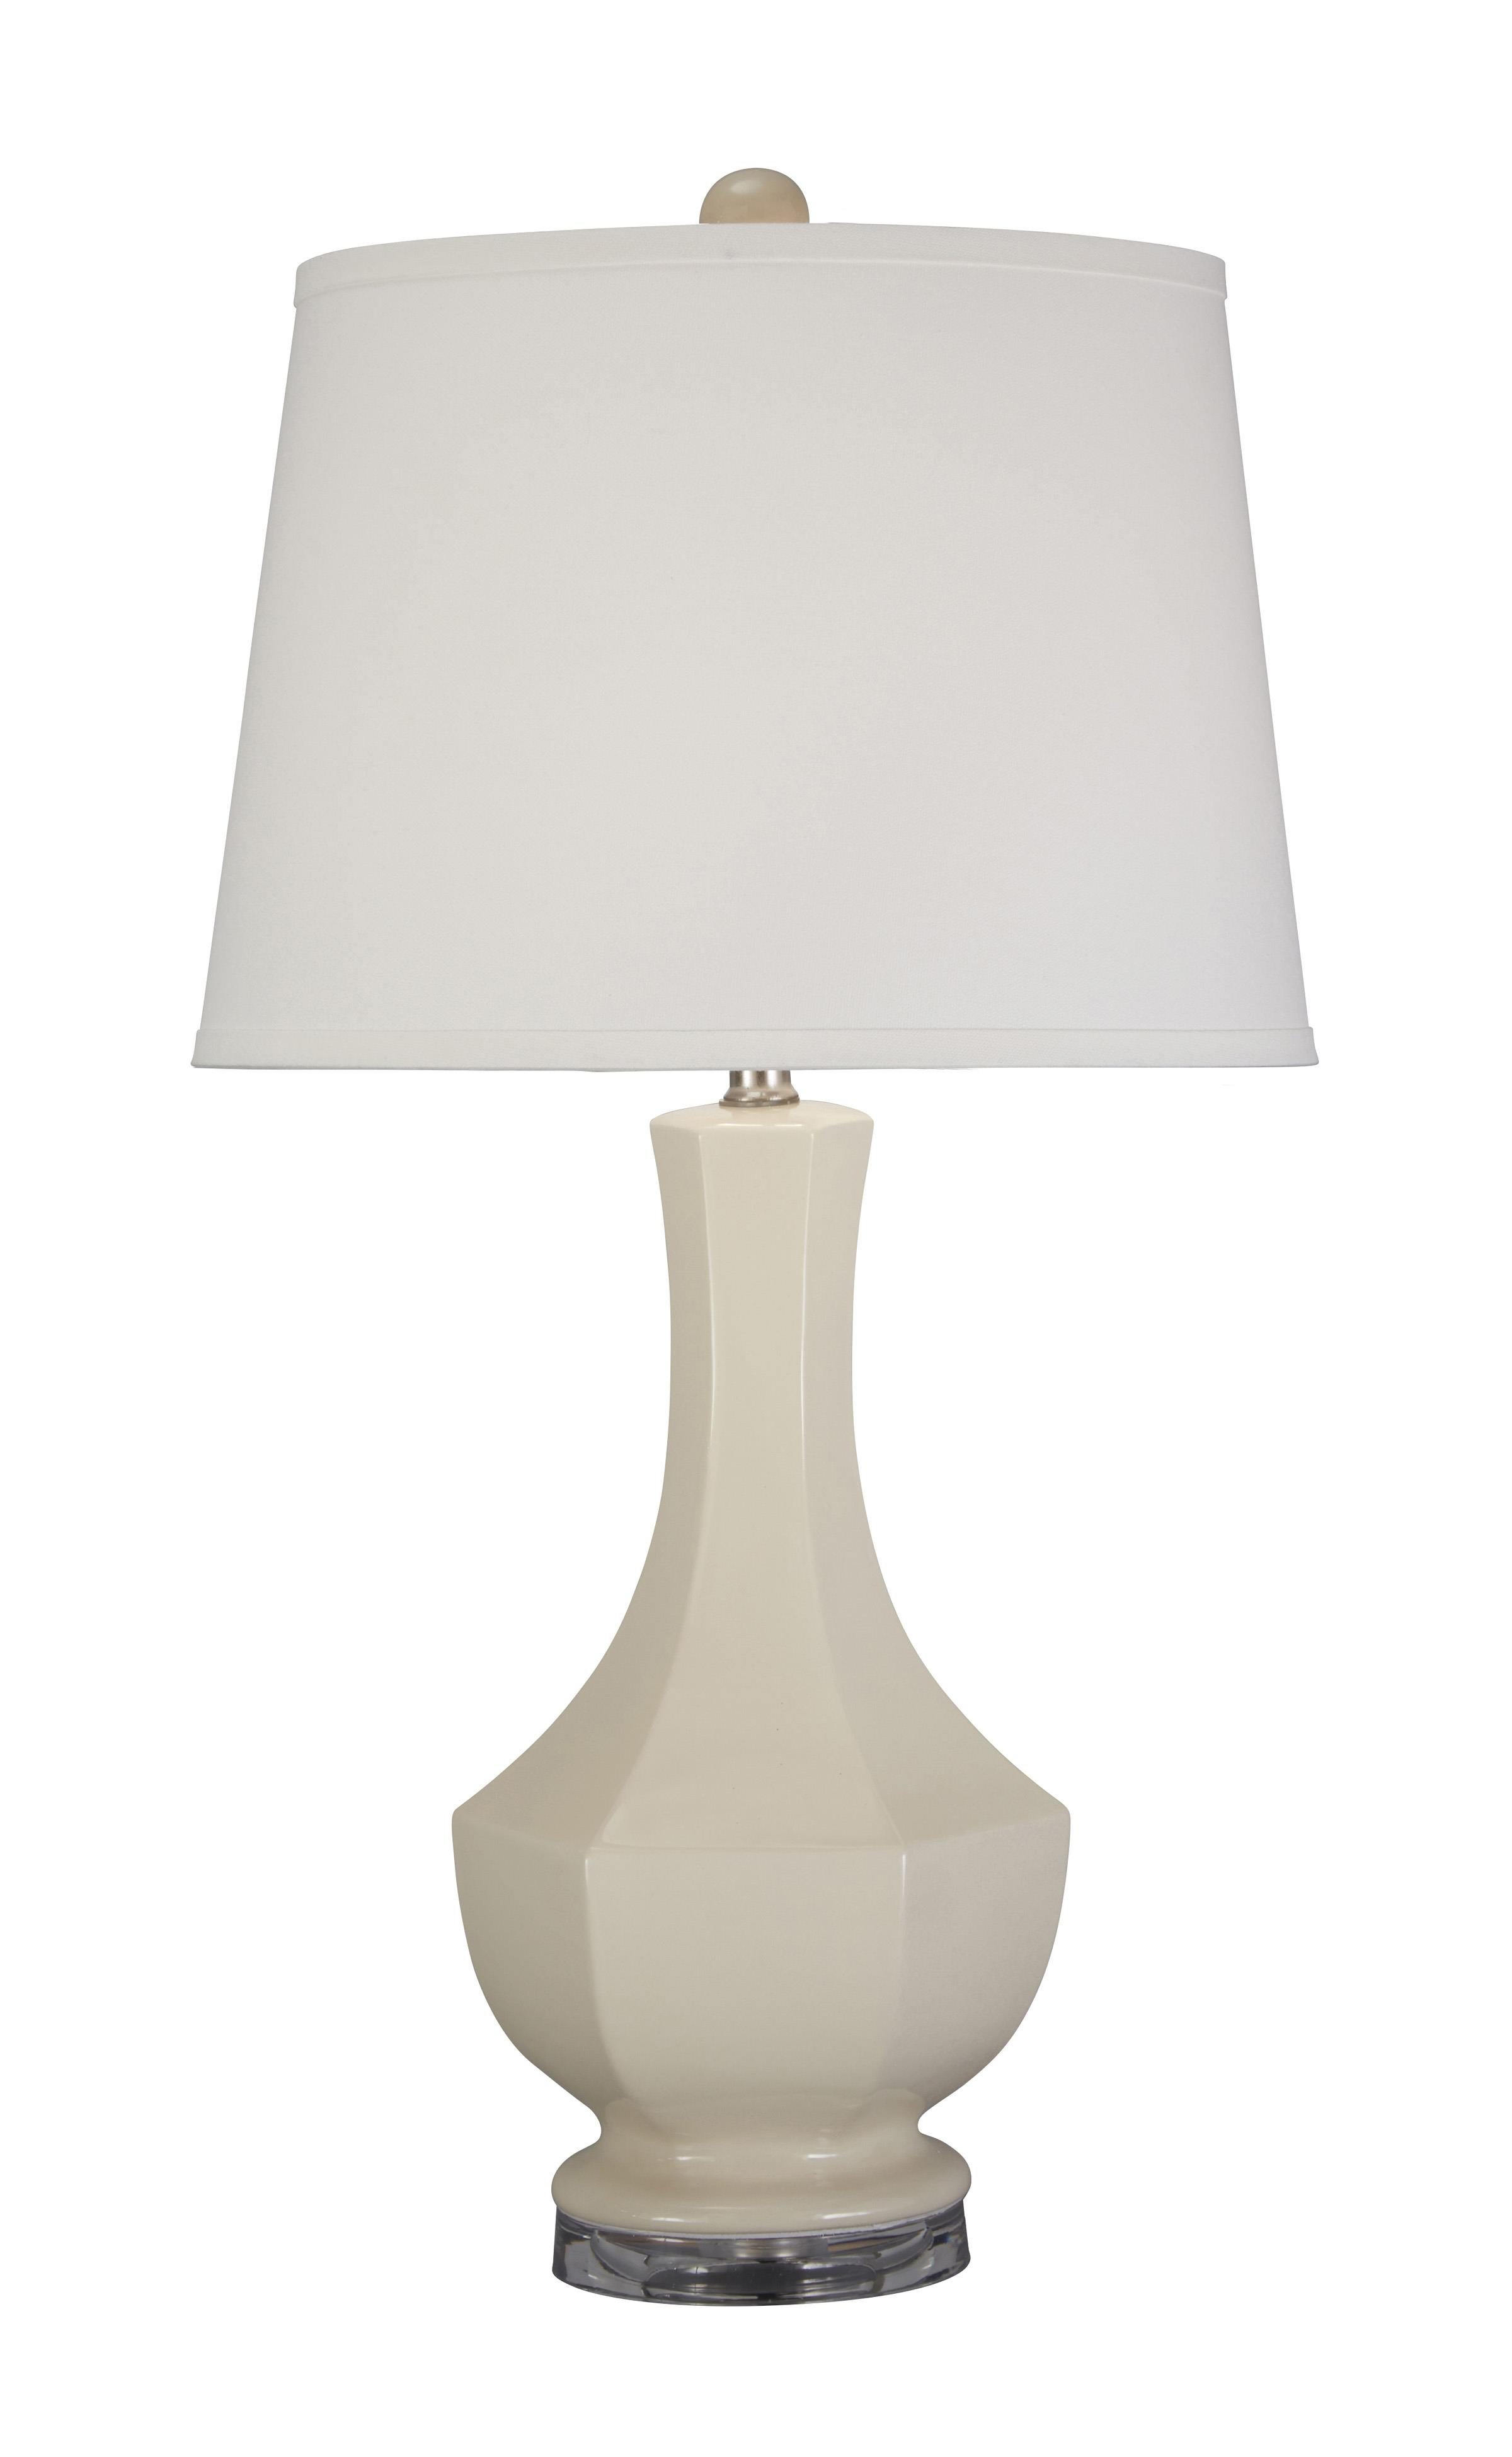 Signature Design by Ashley Lamps - Traditional Classics Suellen Cream Ceramic Table Lamp - Item Number: L100424